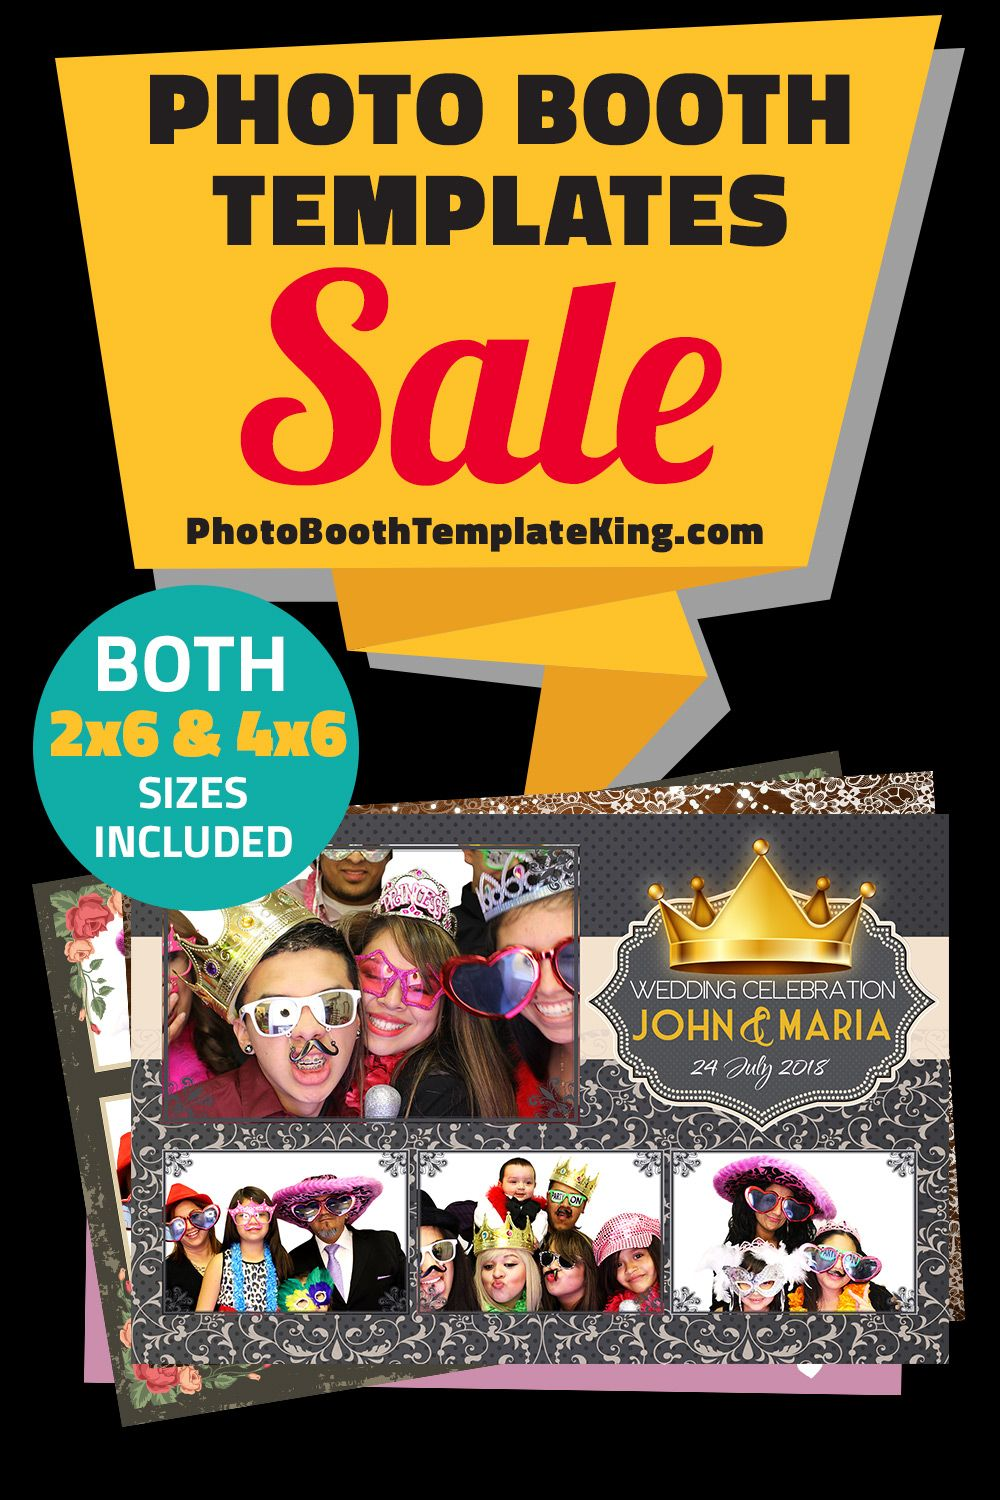 Photo Booth Template Sale You Can Buy Photo Booth Templates For 20 And Under Both 2x6 4x6 Sizes Are Included All Sal Buy Photo Booth Photo Booth Templates Photo booth templates for sale